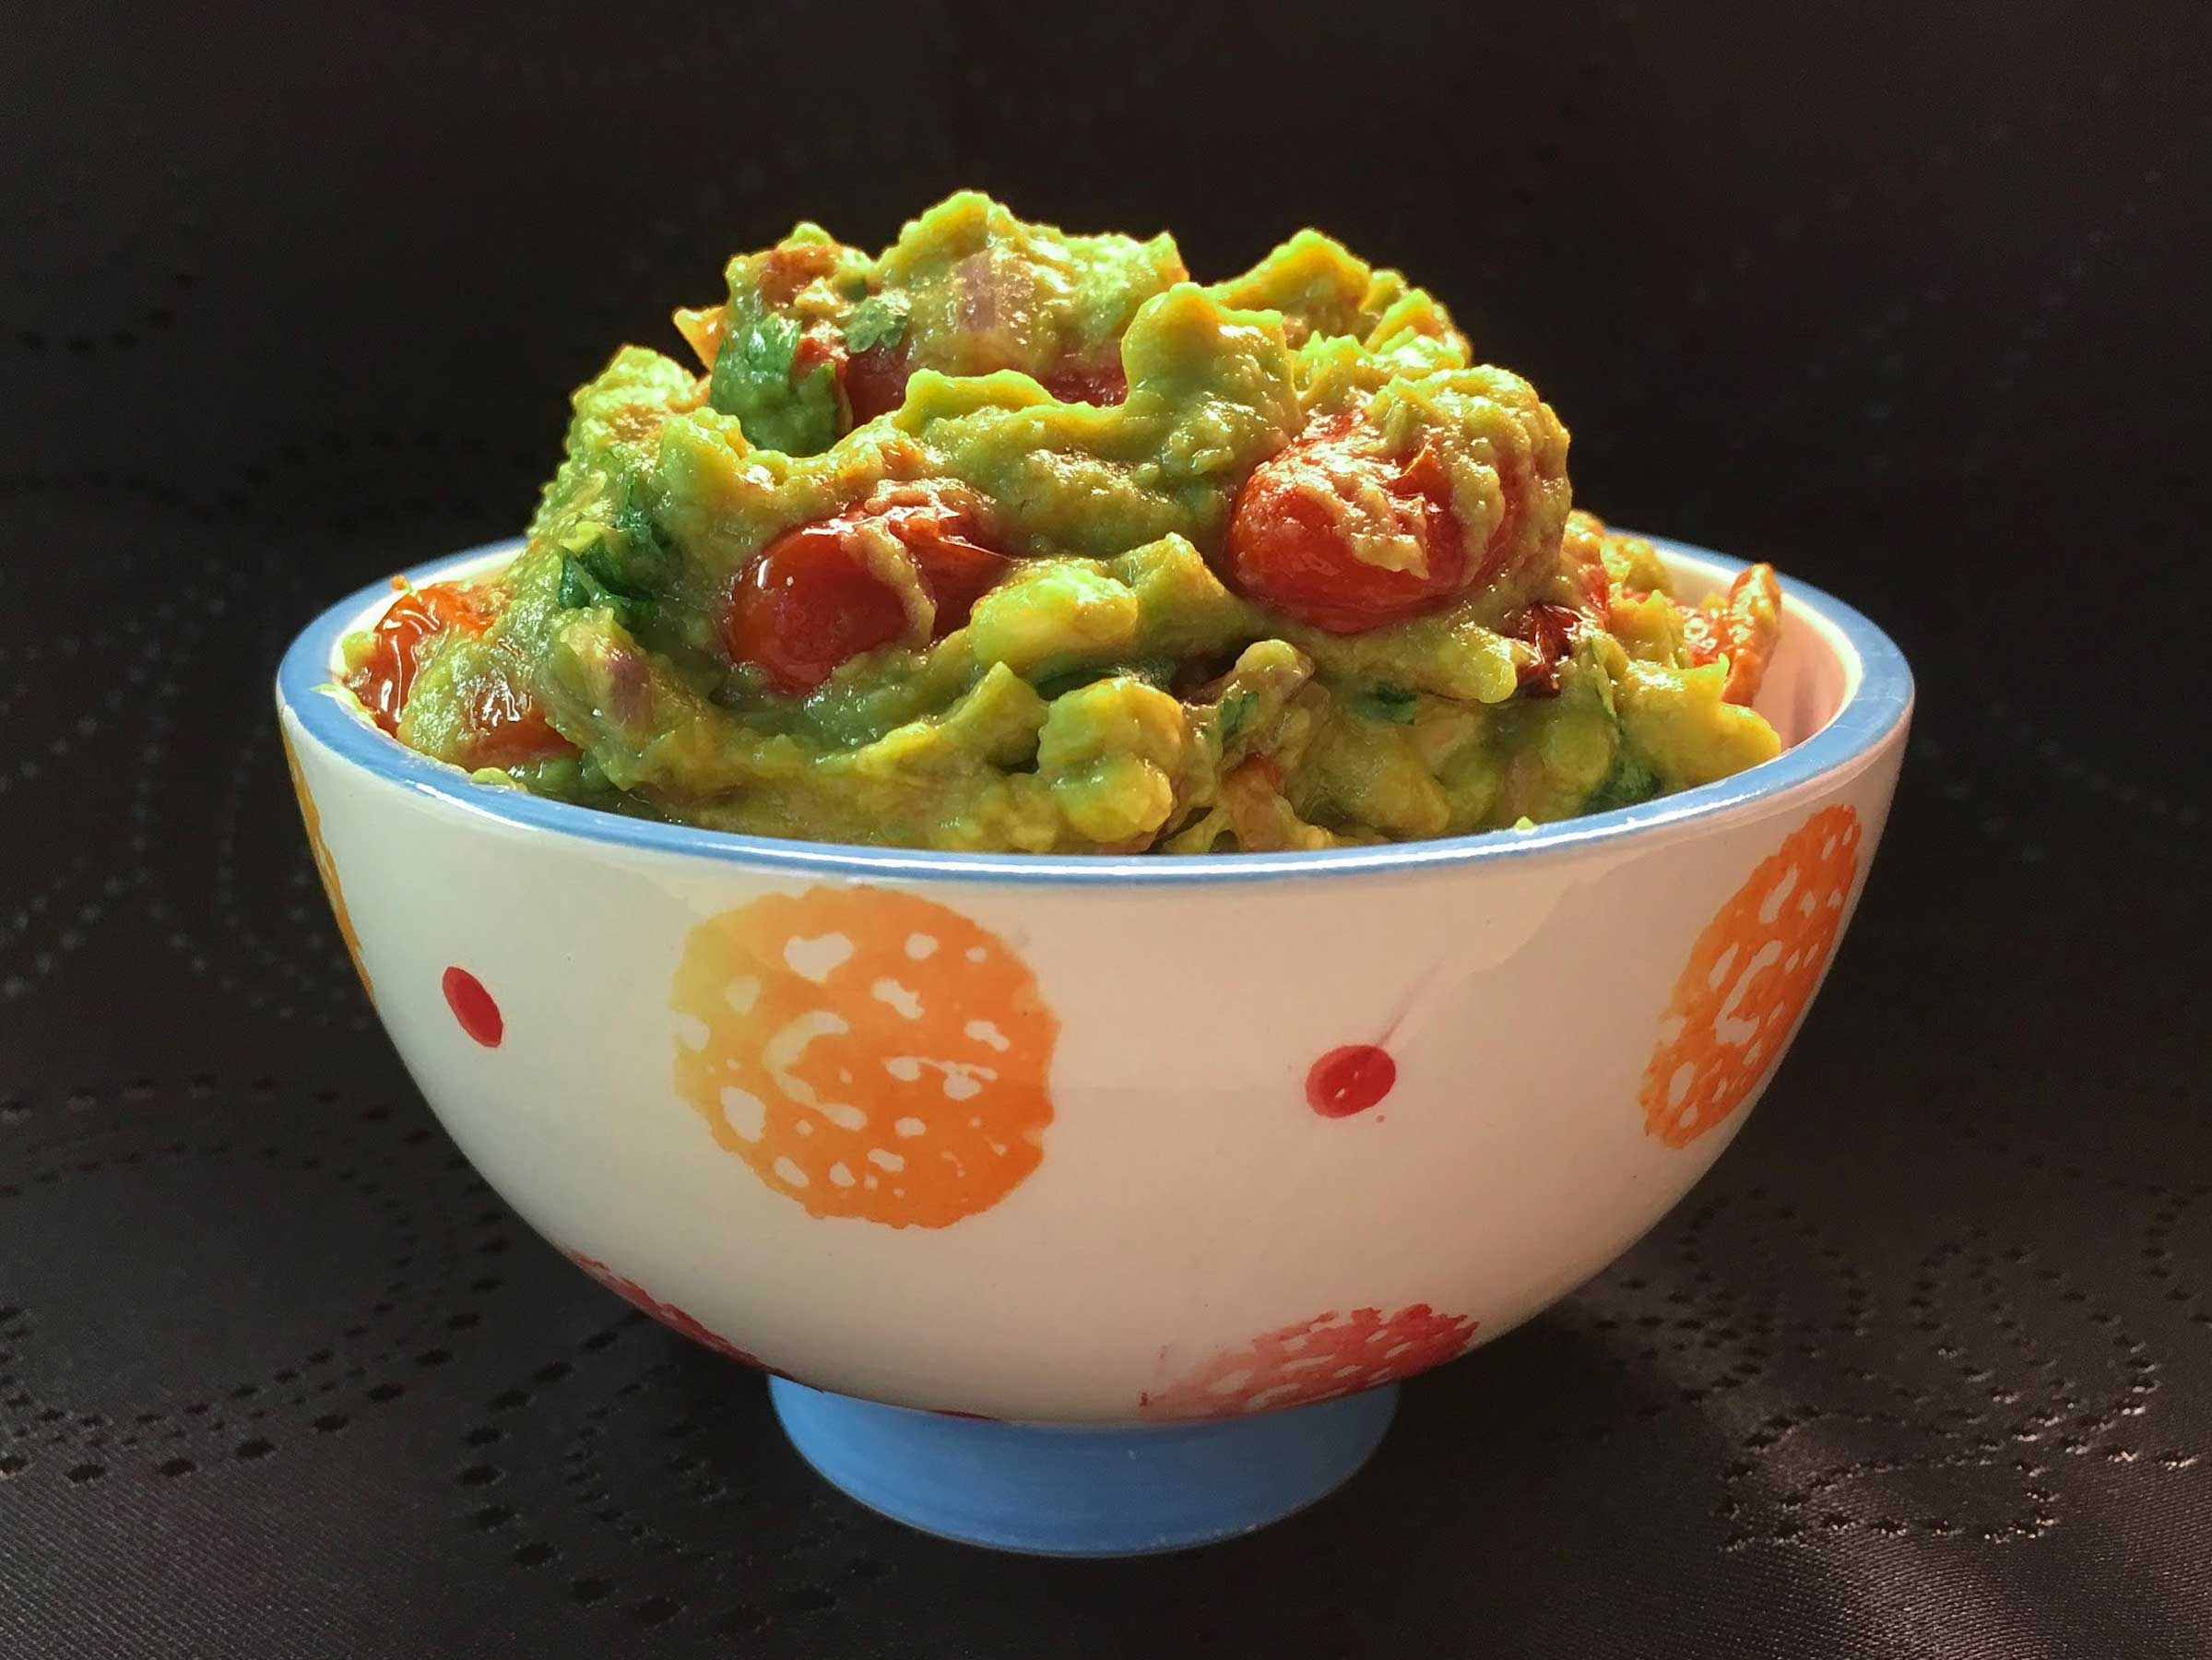 Blistered Guacamole in bowl